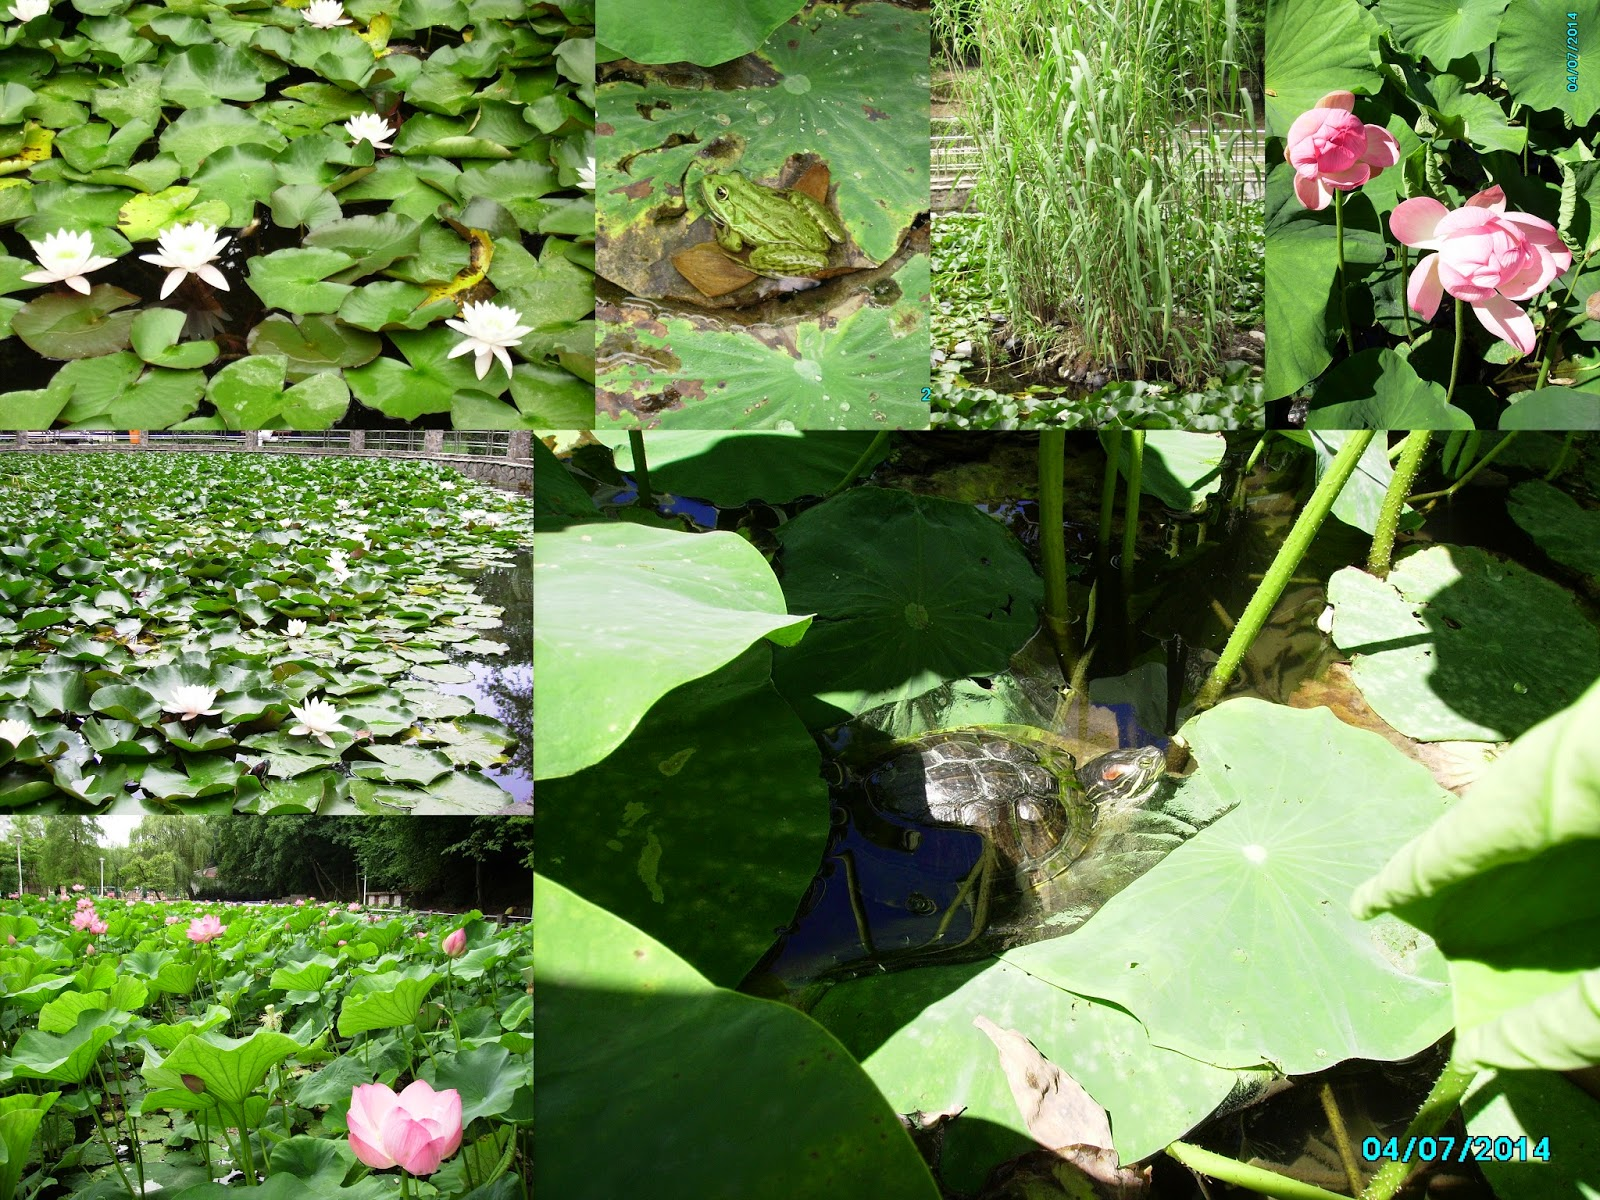 Nymphaea lotus var. thermalis & Flowers of Nelumbo nucifera - the pink lotus in The natural Water Lily Reserve of Băile Felix. Also, some creatures: like frogs and turtles.